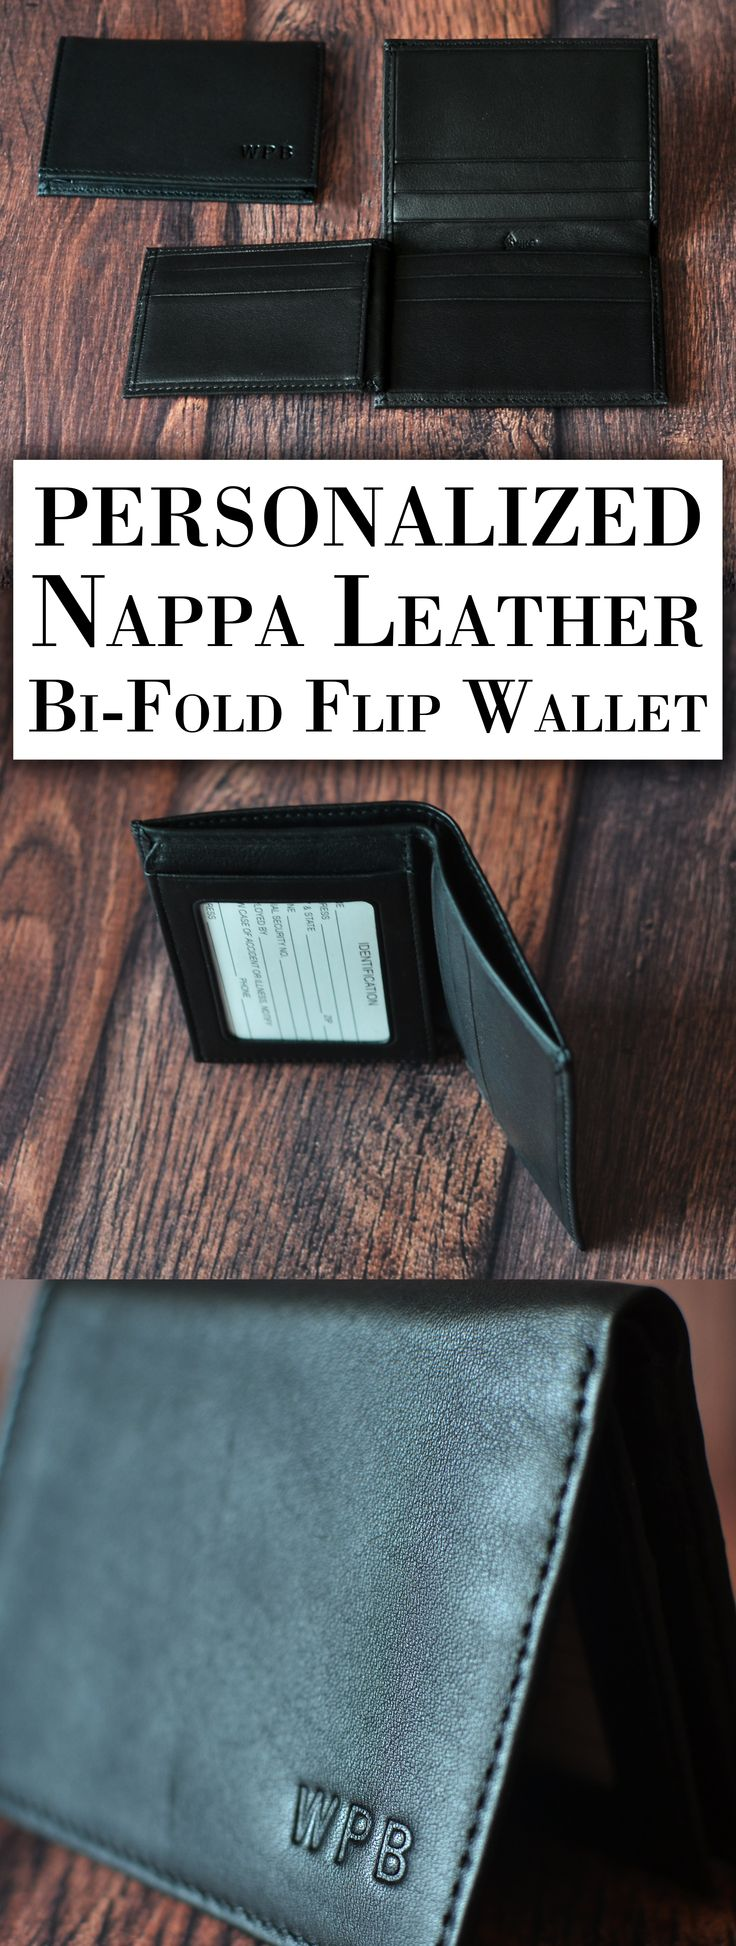 A unique alternative to the traditional trifold wallet, this Nappa leather men's wallet flips open on two sides, one over the top and the other to the left. Personalized with 3 initials or a first name, this convenient and compact wallet, hand-crafted in the USA, is a gift your best man and groomsmen will want to use every day, including on your wedding day. This wallet can be ordered at http://myweddingreceptionideas.com/personalized-rustic-wood-craft-beer-bottle-carrier.asp